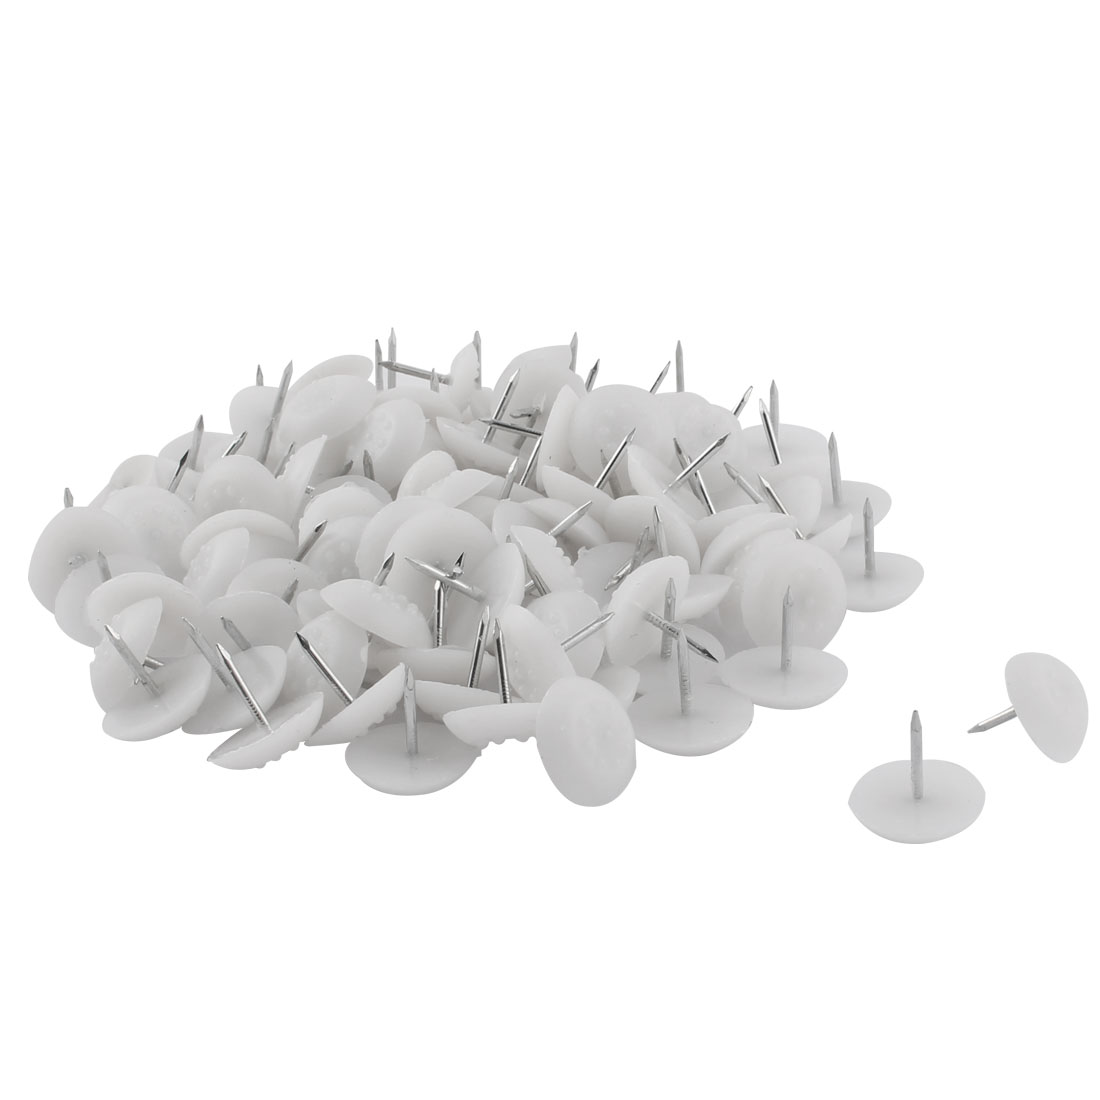 Furniture Table Chair Plastic Base Leg Floor Protector Nails Pad White 2.1cm Dia 100pcs